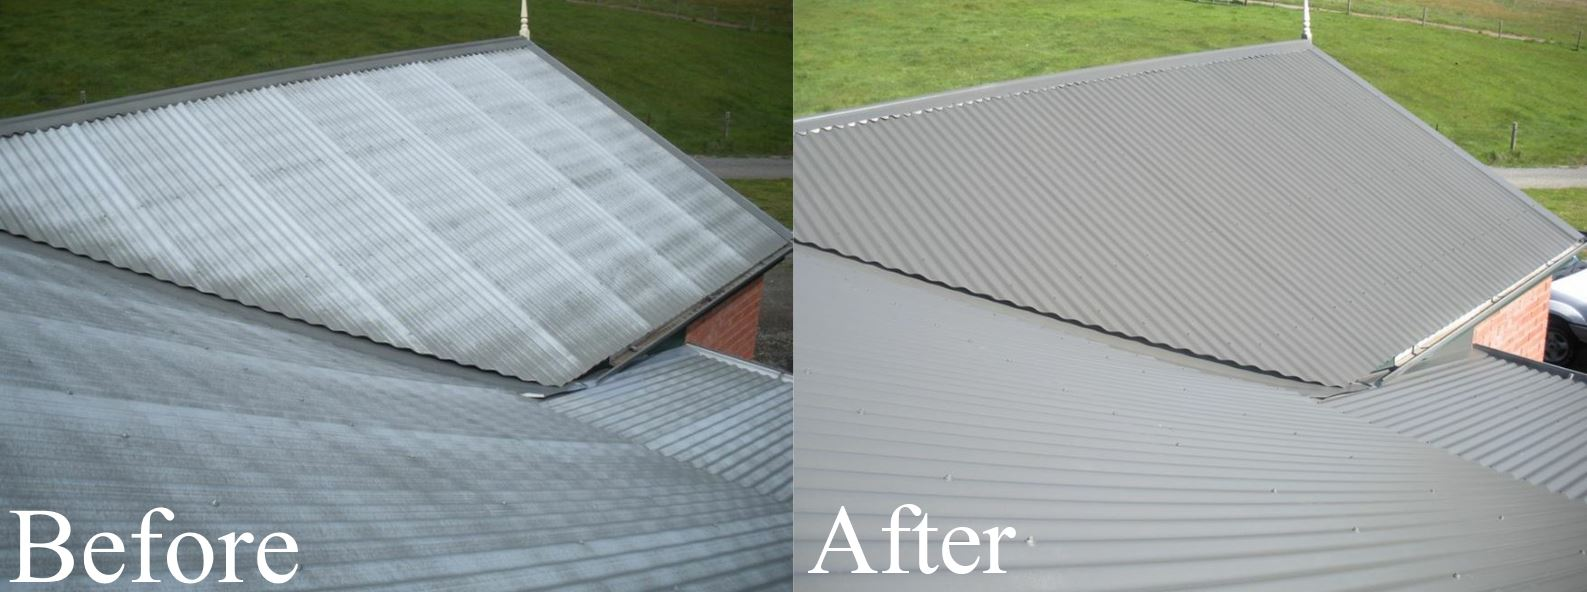 Metal Roof Restoration Brisbane Roof Restorations